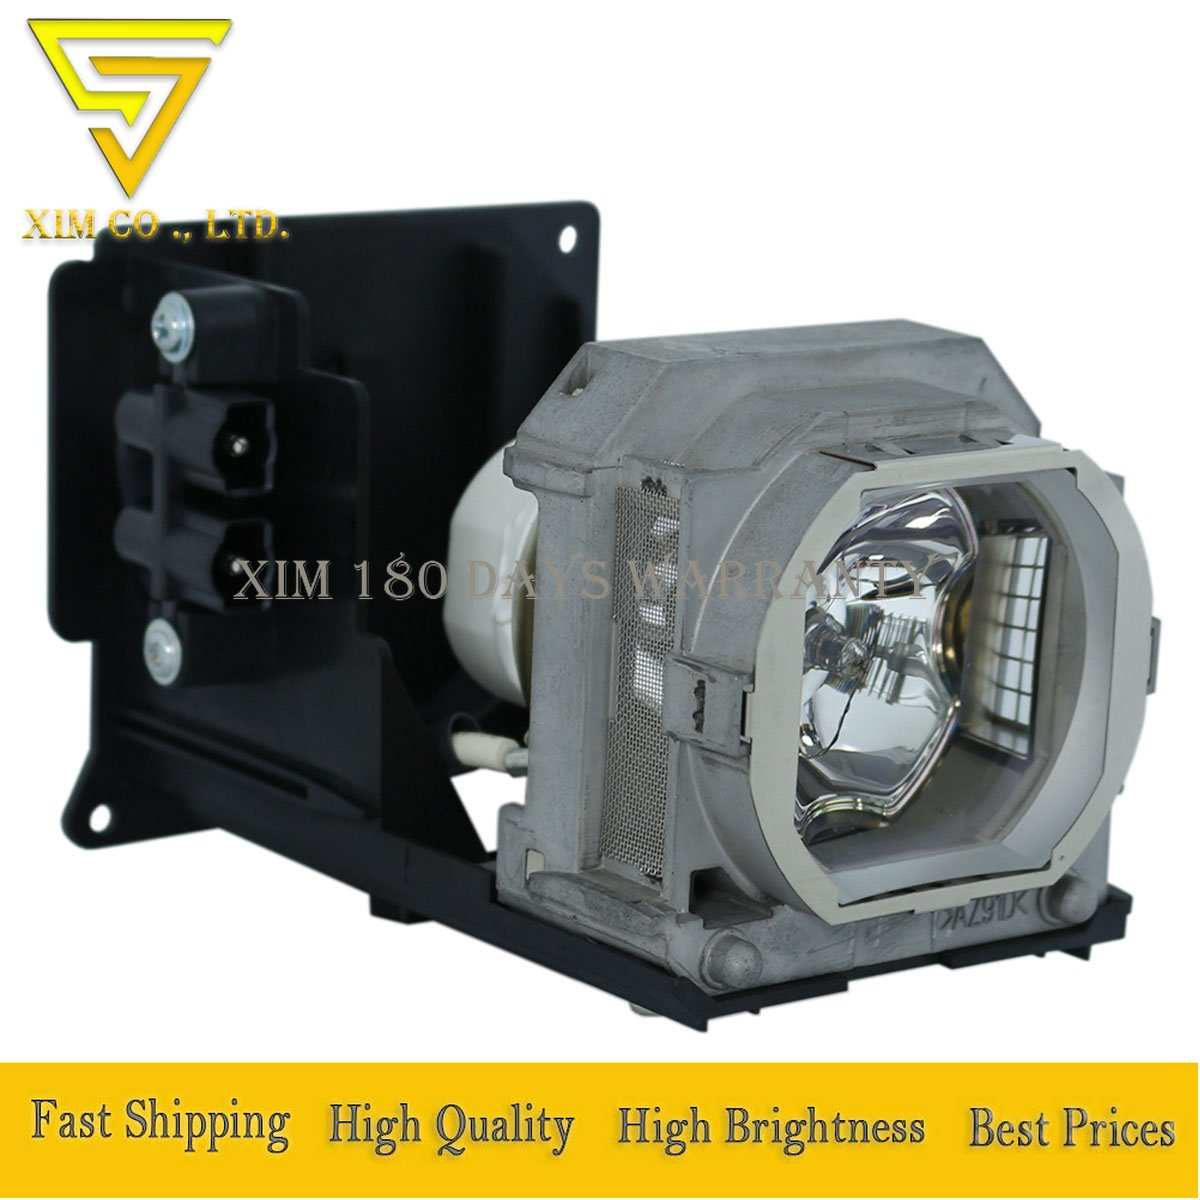 VLT-XL550LP Professional Replacement Projector Lamp Bulb with <font><b>Mitsubishi</b></font> XL550U XL1550 XL1550U XL550 LX-5280 XL1520 XL2550 image